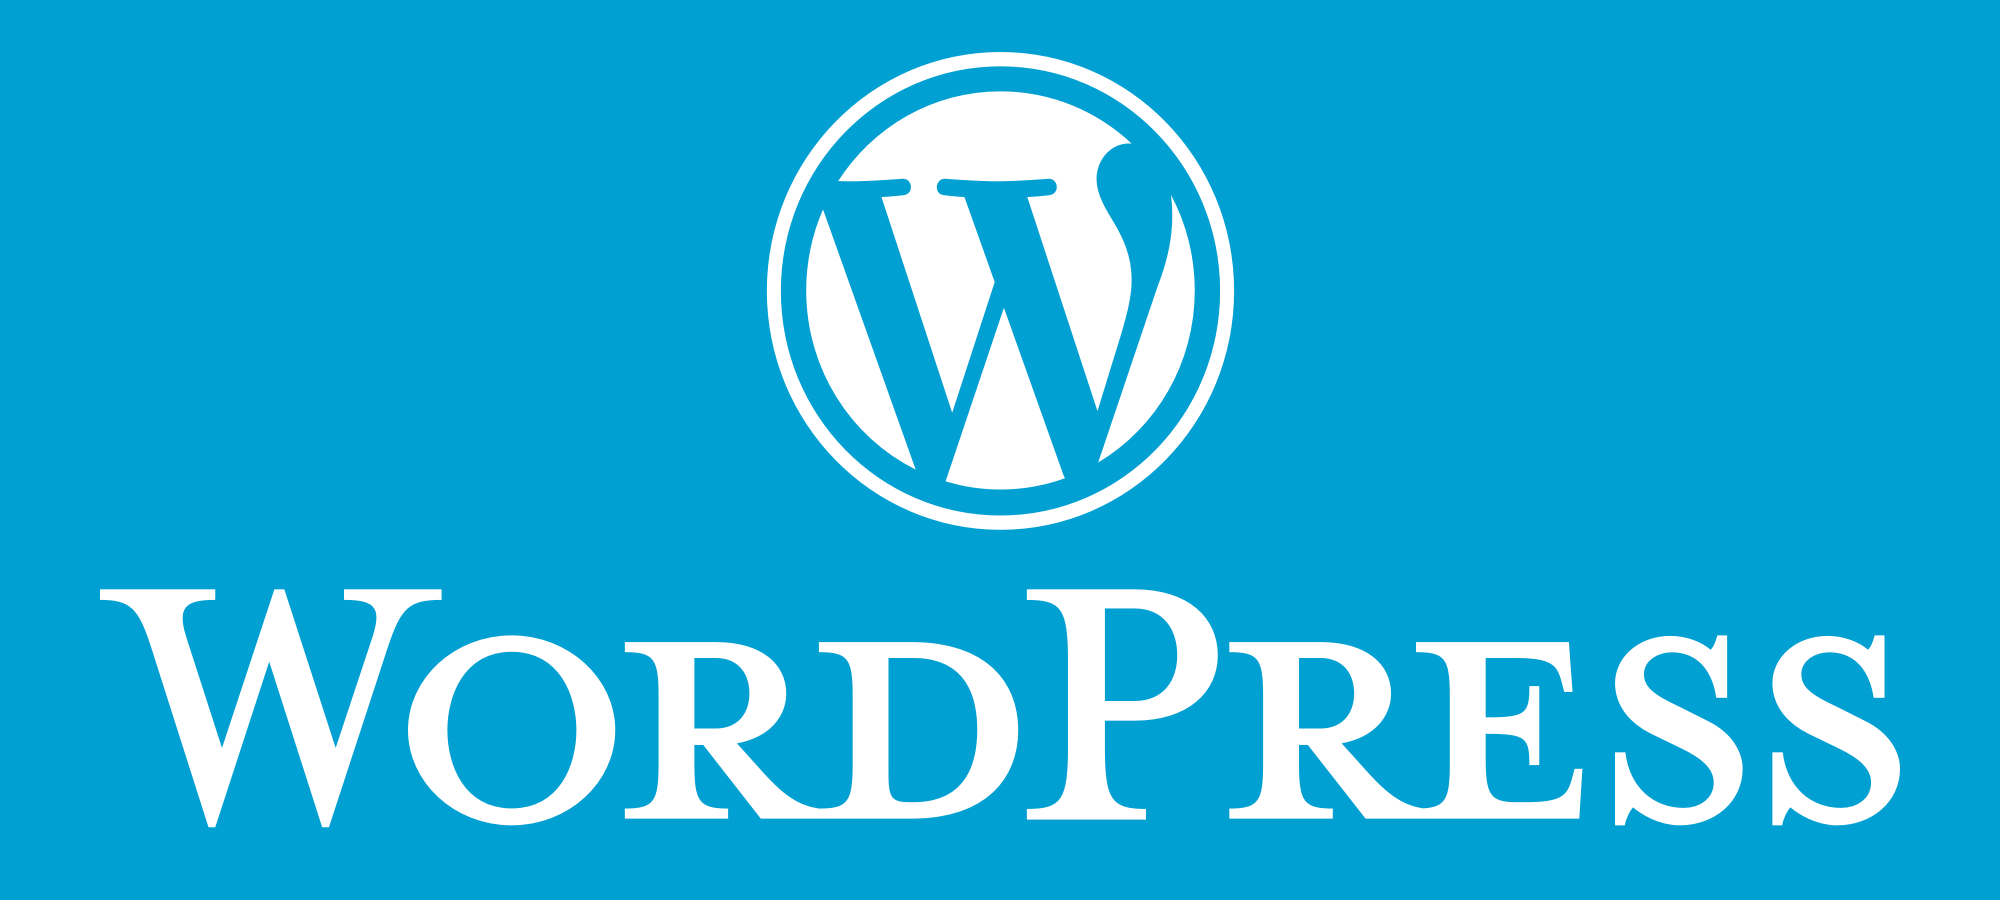 Wordpress website laten maken. Wat is WordPress?